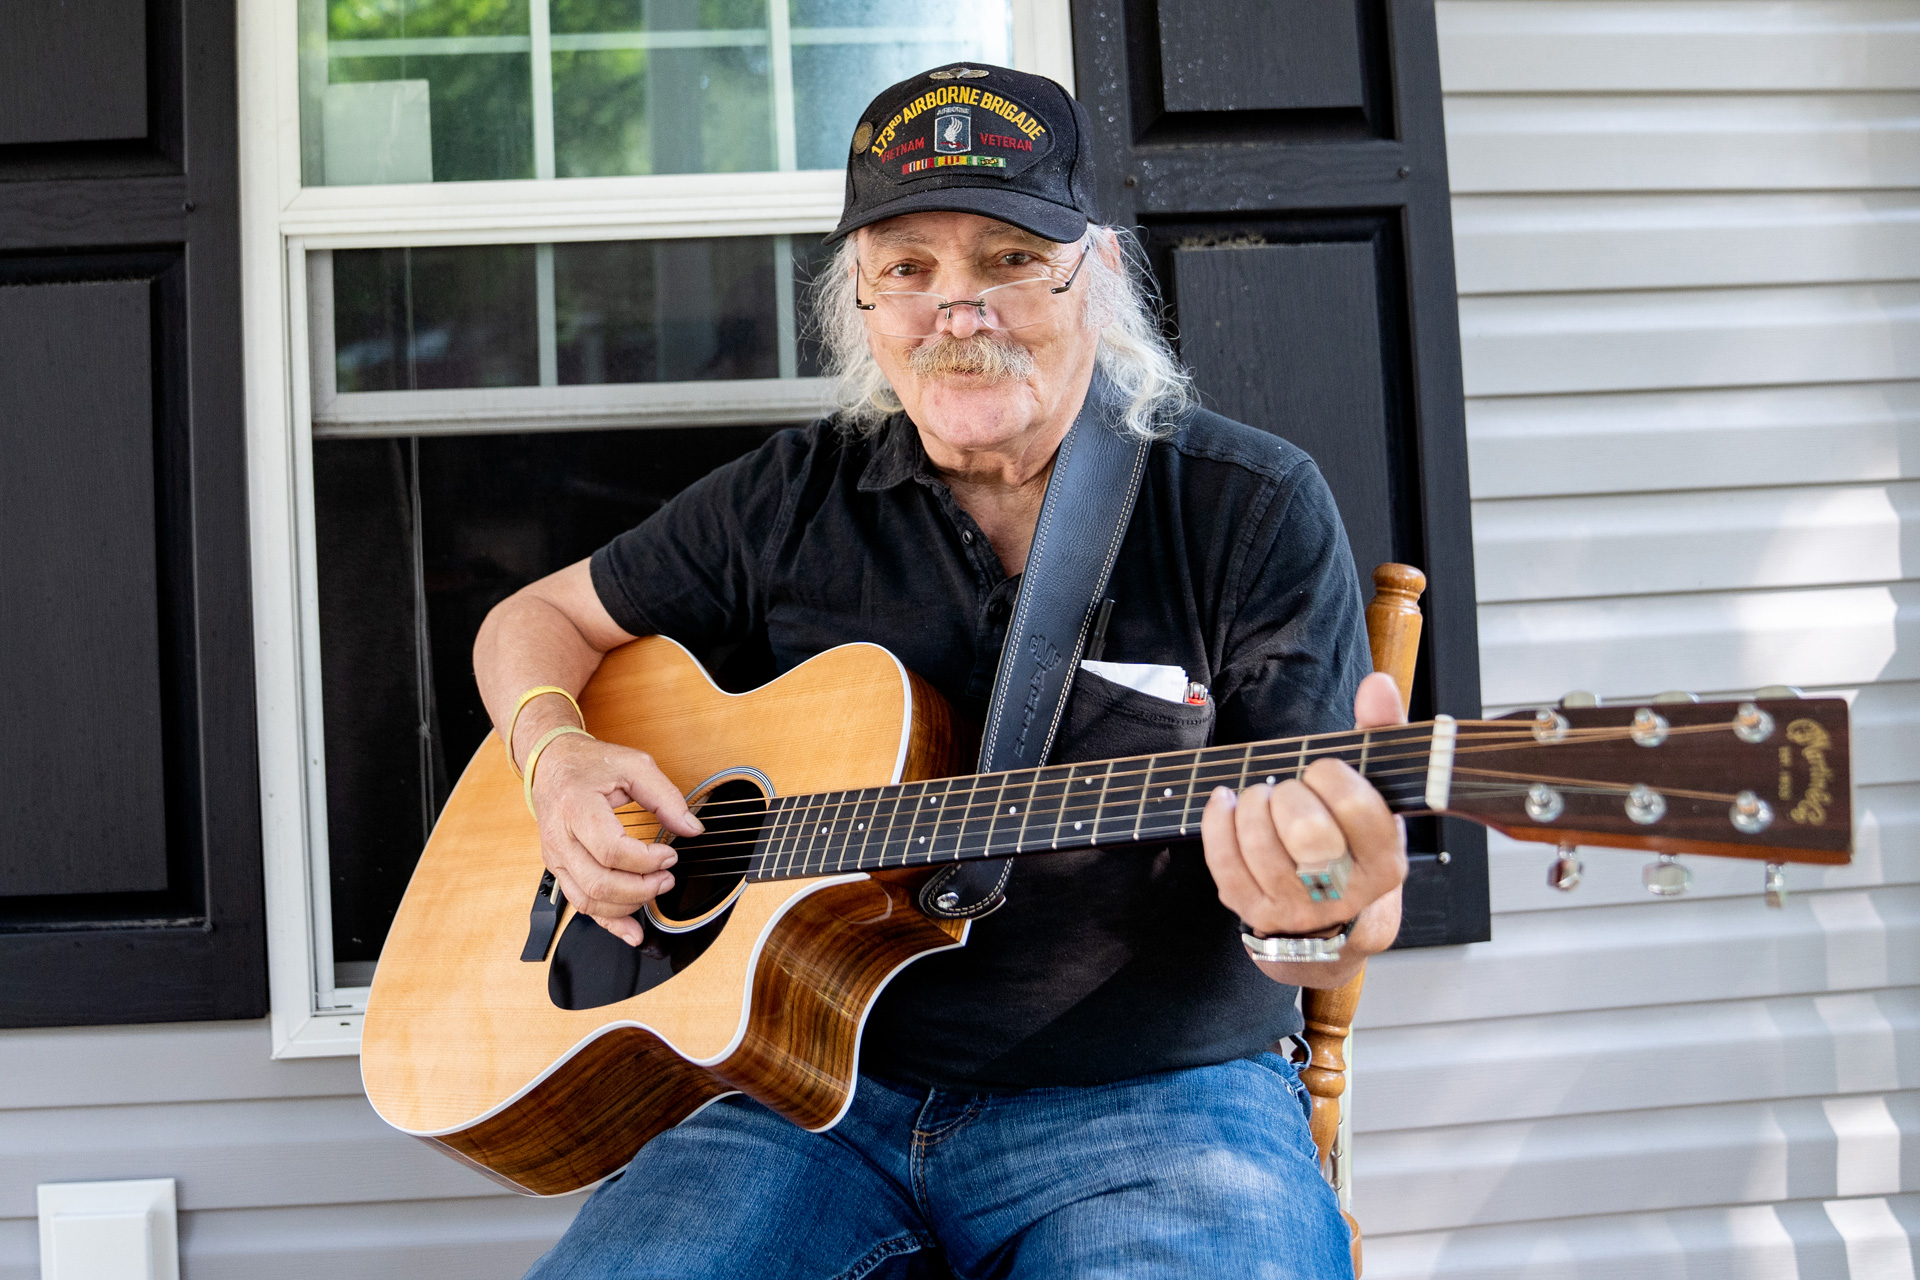 Grey-haired man playing guitar